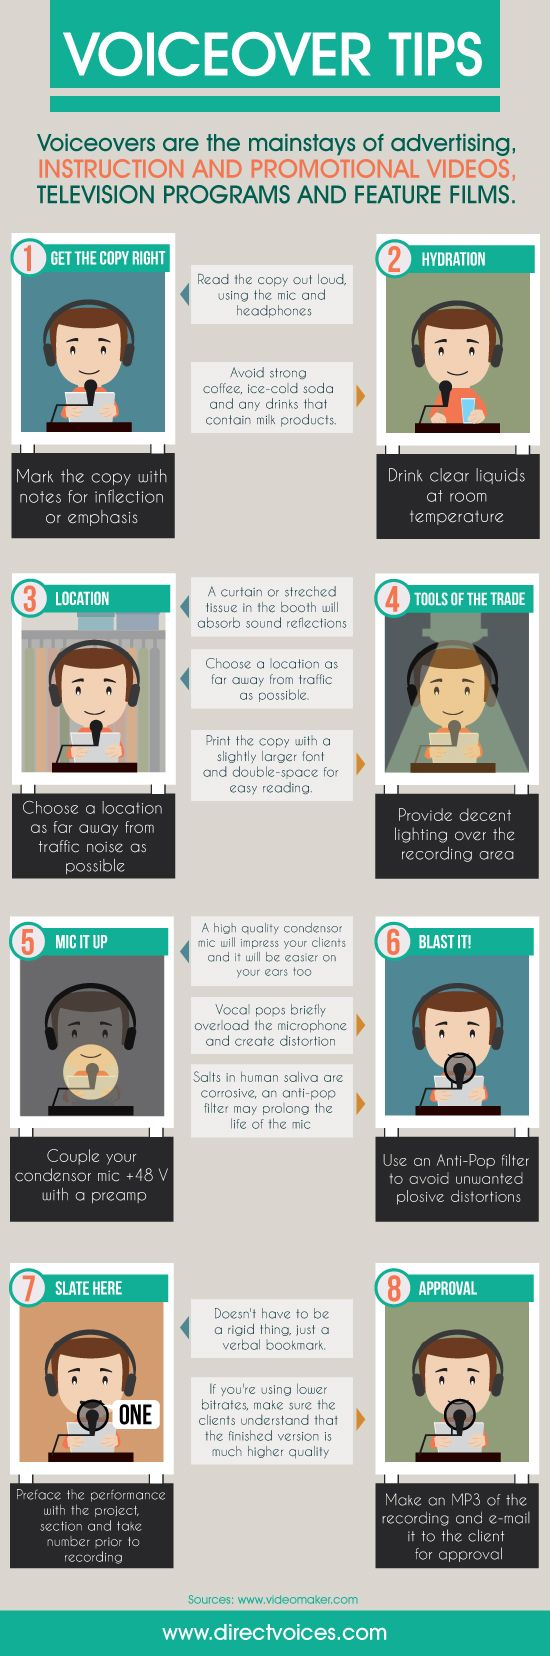 Voiceover tips for audio actors - particularly those who may work from their own homes in their own studio.